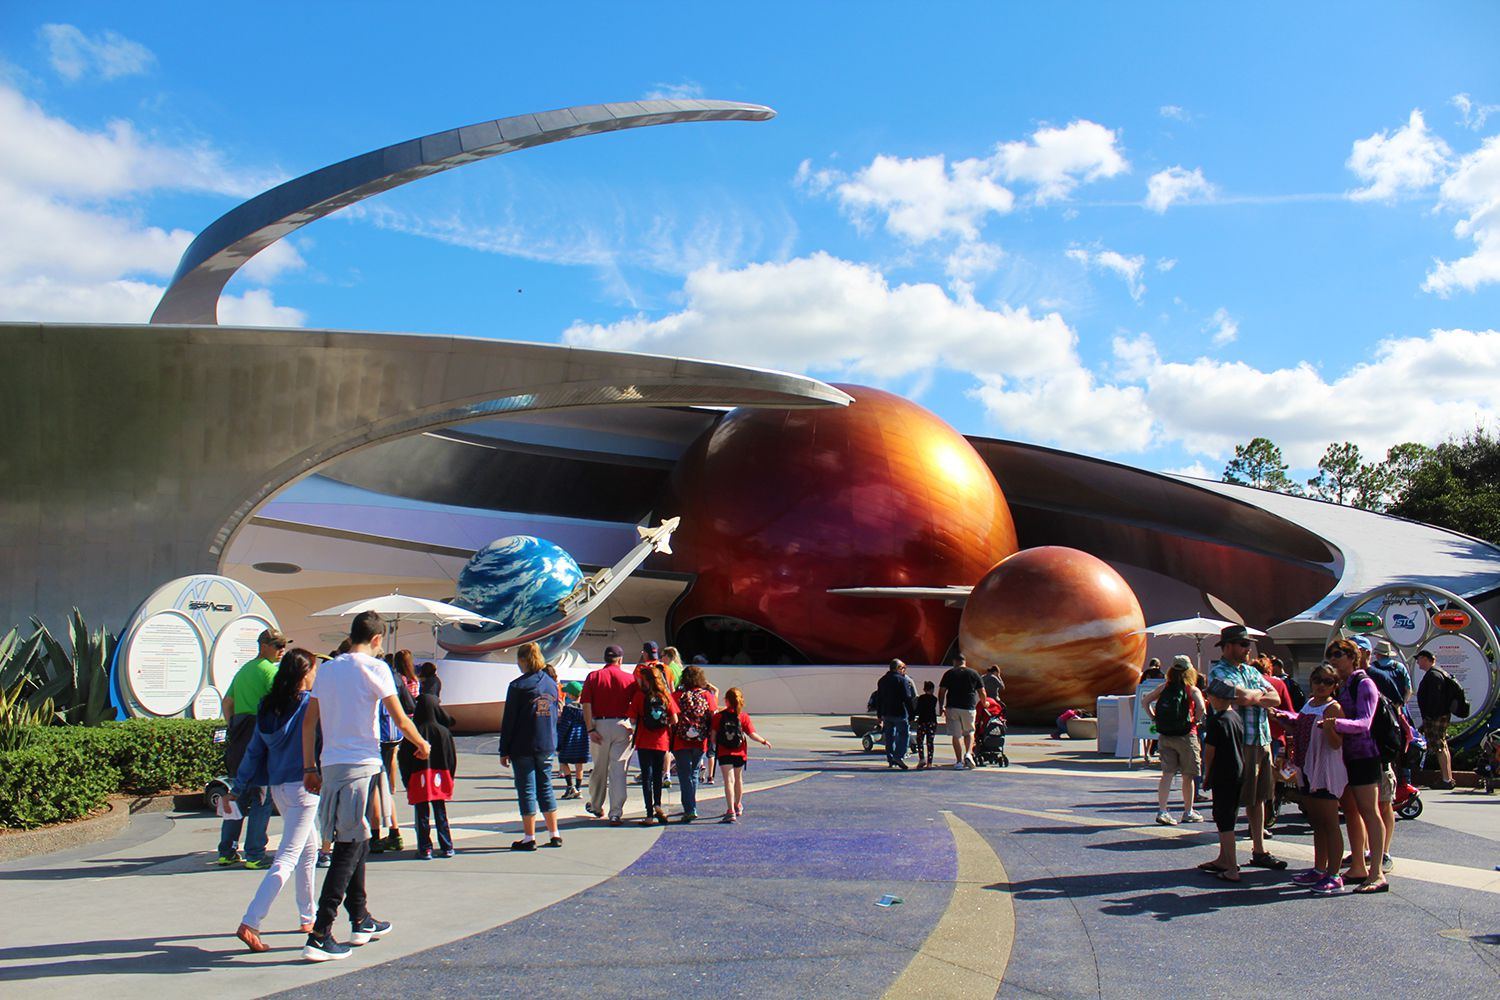 Epcot's Thrilling Mission: SPACE